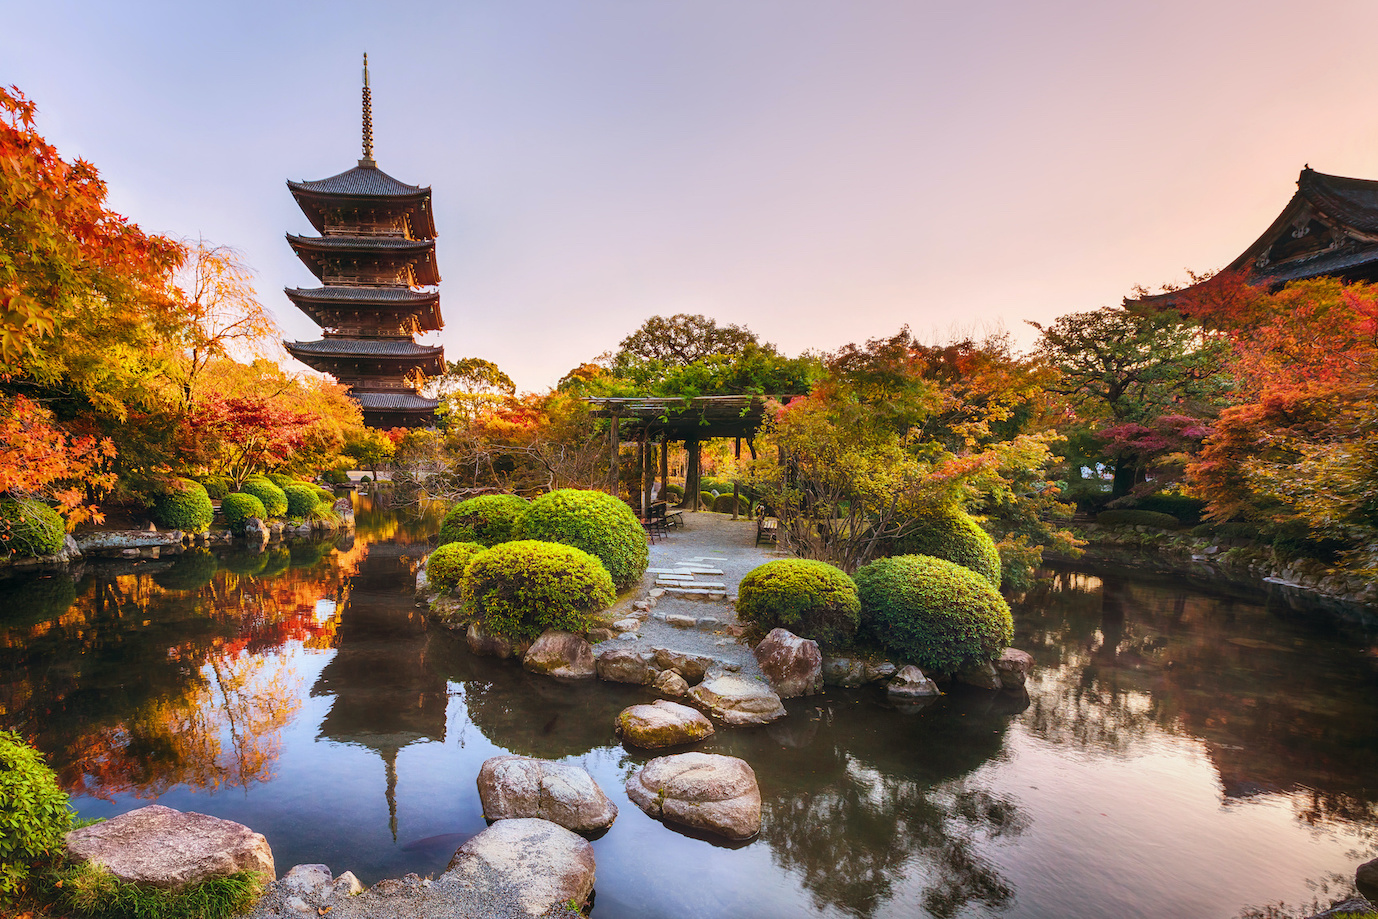 Ancient pagoda Toji temple in autumn garden, Kyoto, Japan. Tallest wooden pagoda in Japan and Unesco world heritage site.